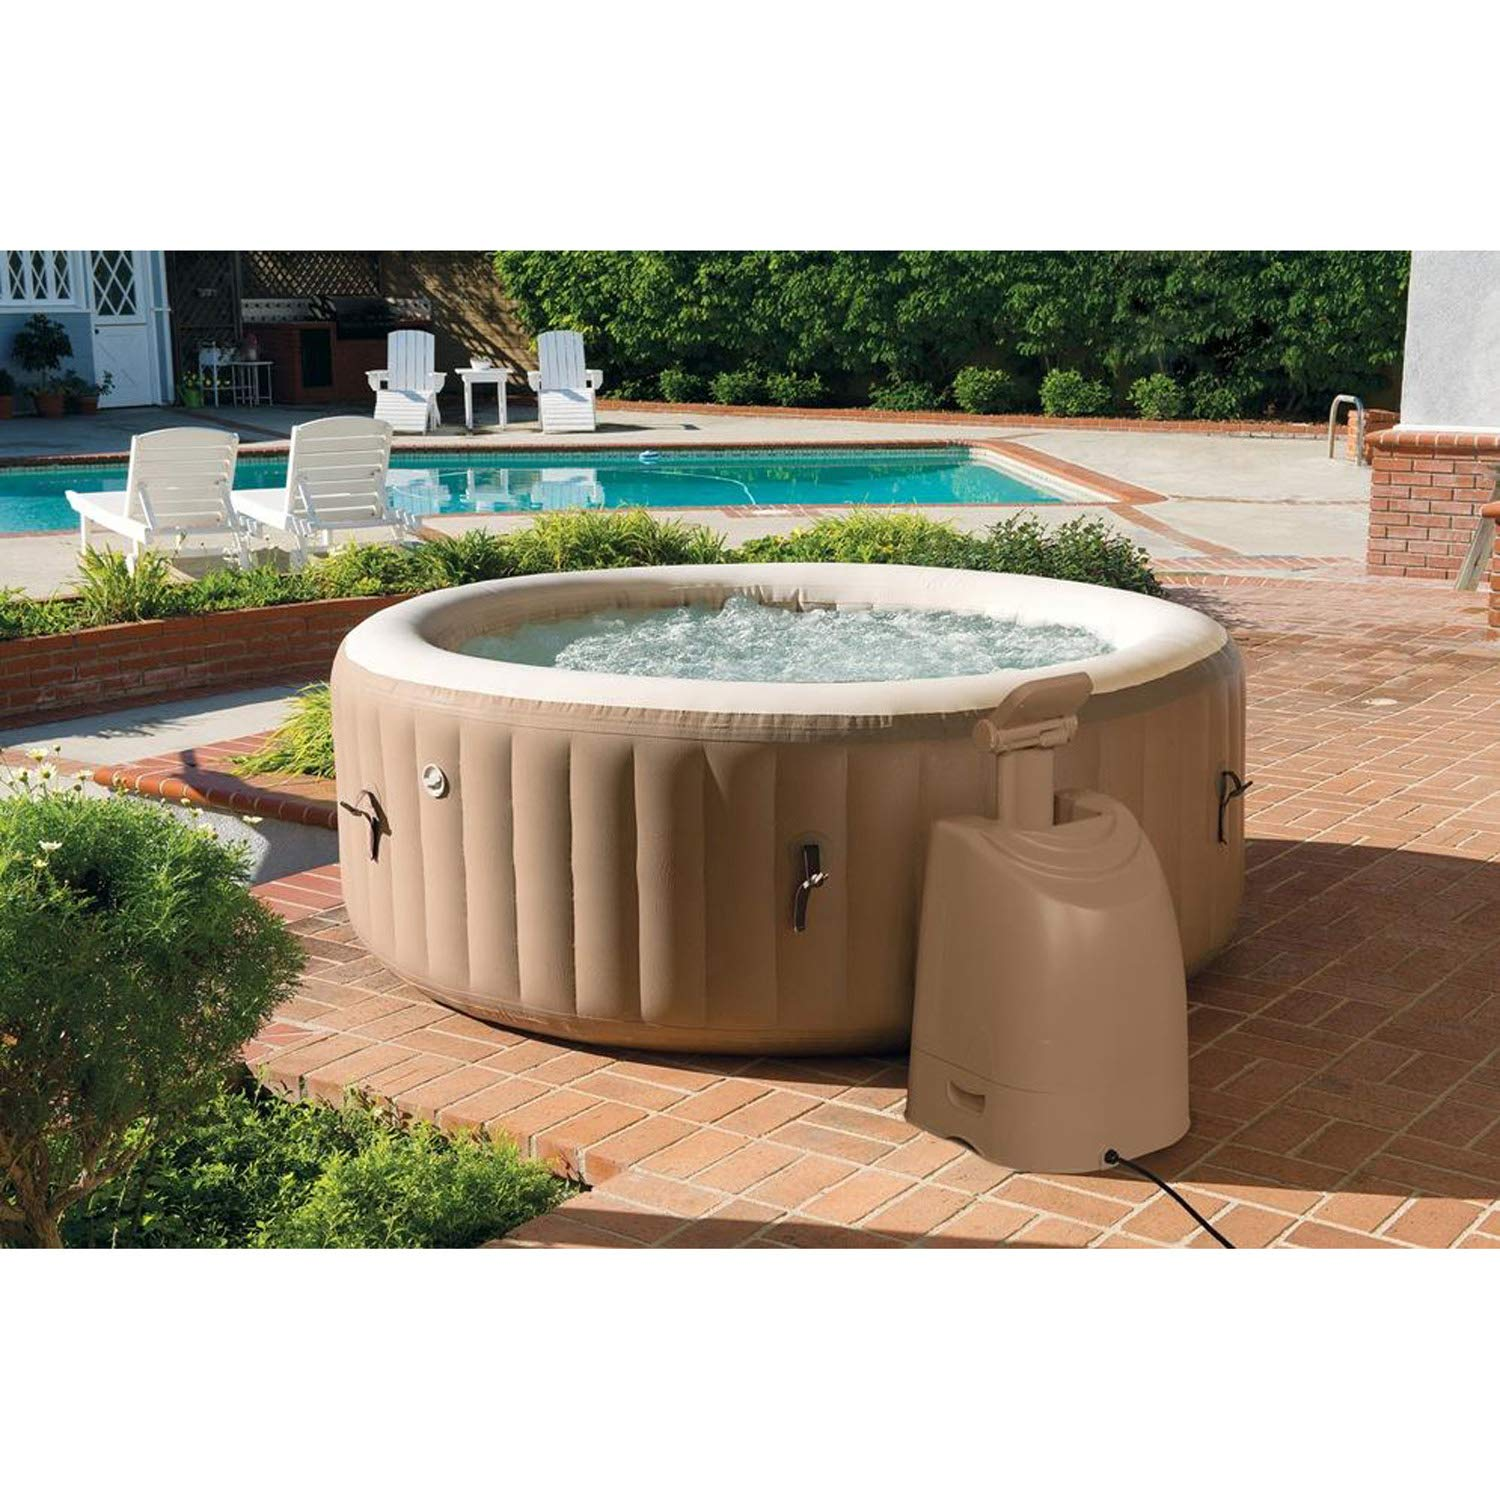 Intex SPA Hinchable Redondo – 6 plazas: Amazon.es: Jardín